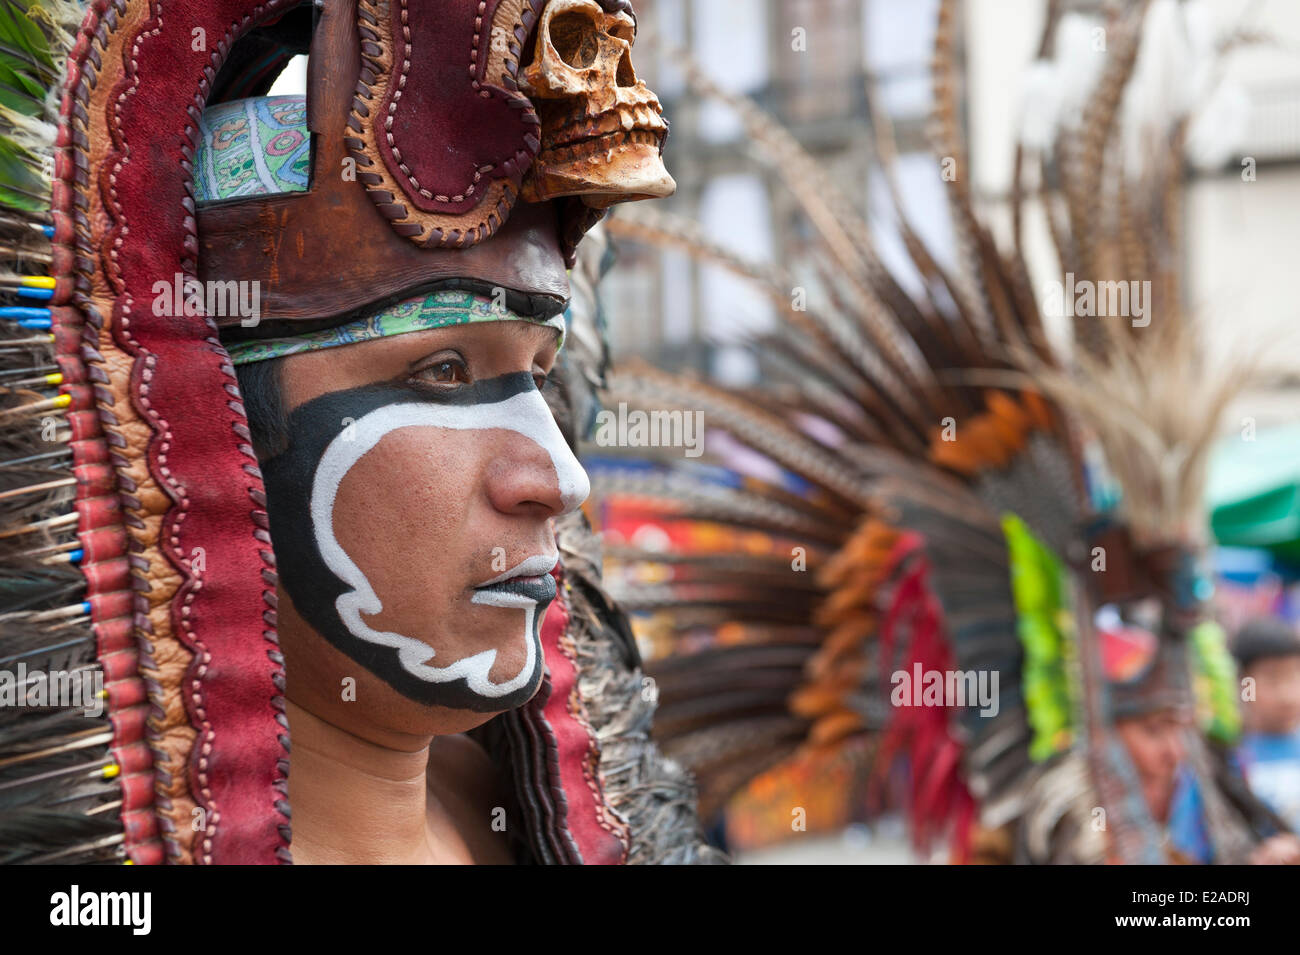 Mexico, Federal District, Mexico city, historical center listed as World Heritage by UNESCO, shamanistic ritual - Stock Image